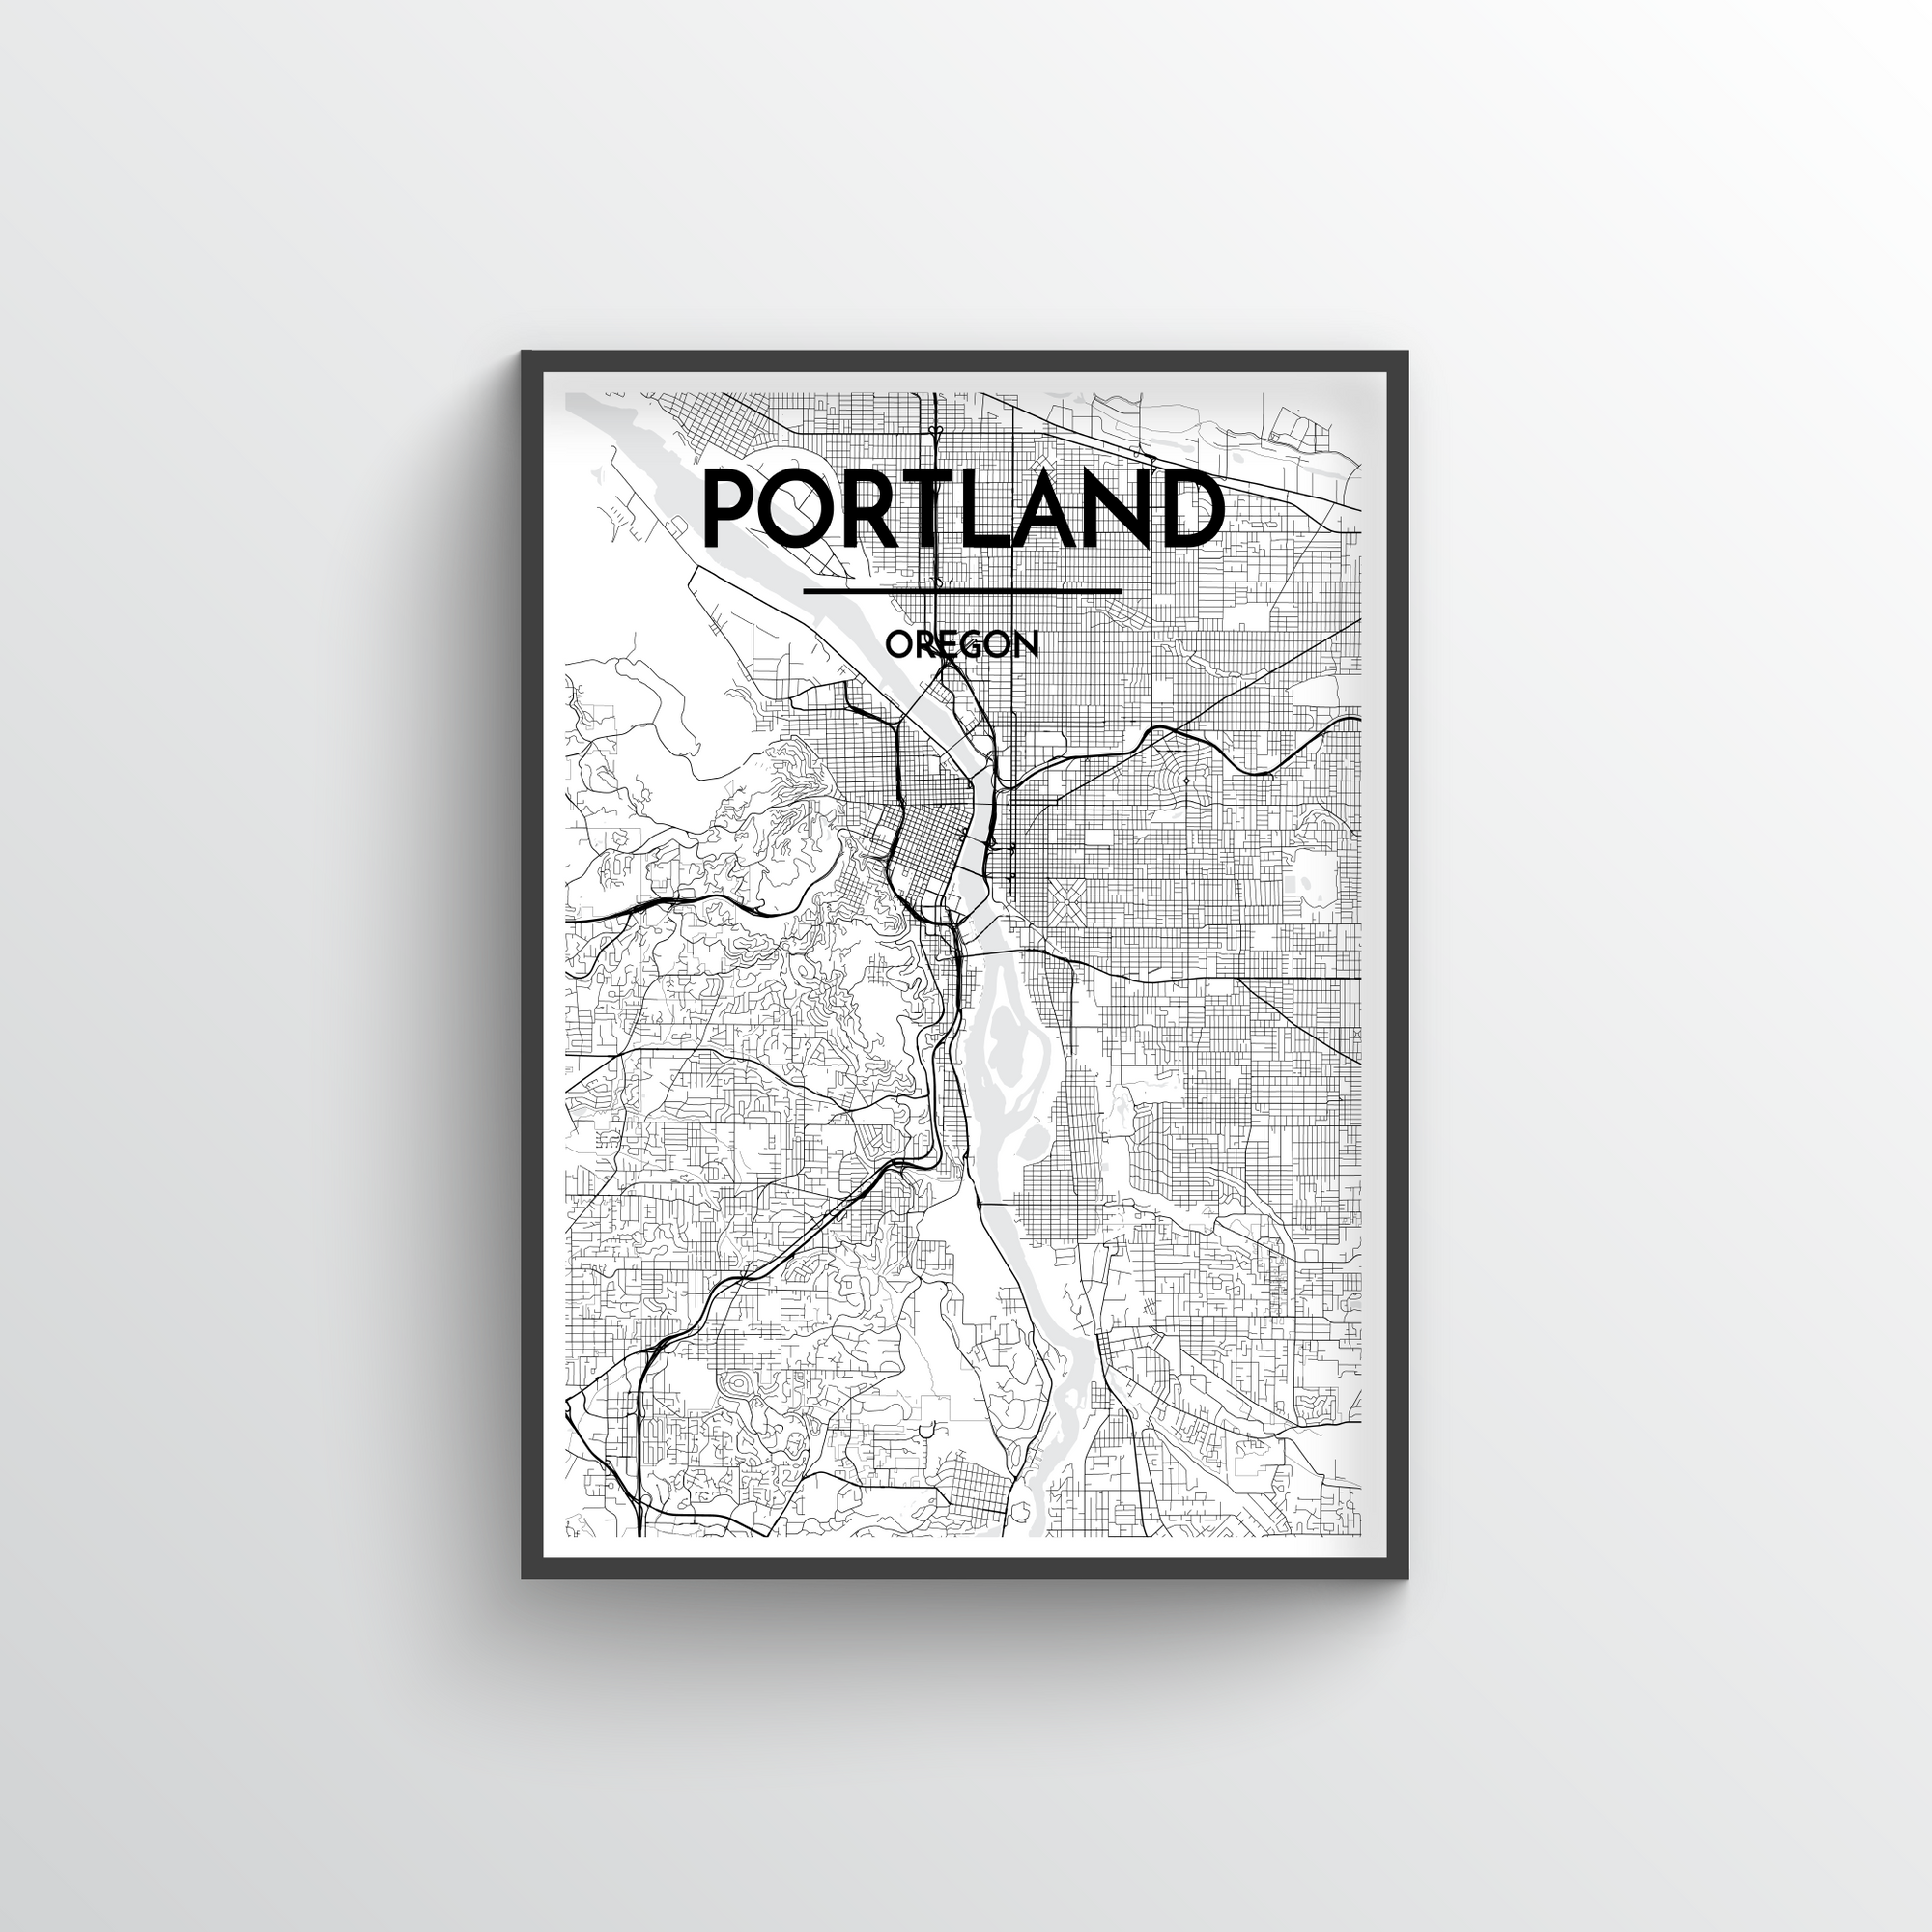 Portland, Oregon - Map Art - Point Two Design